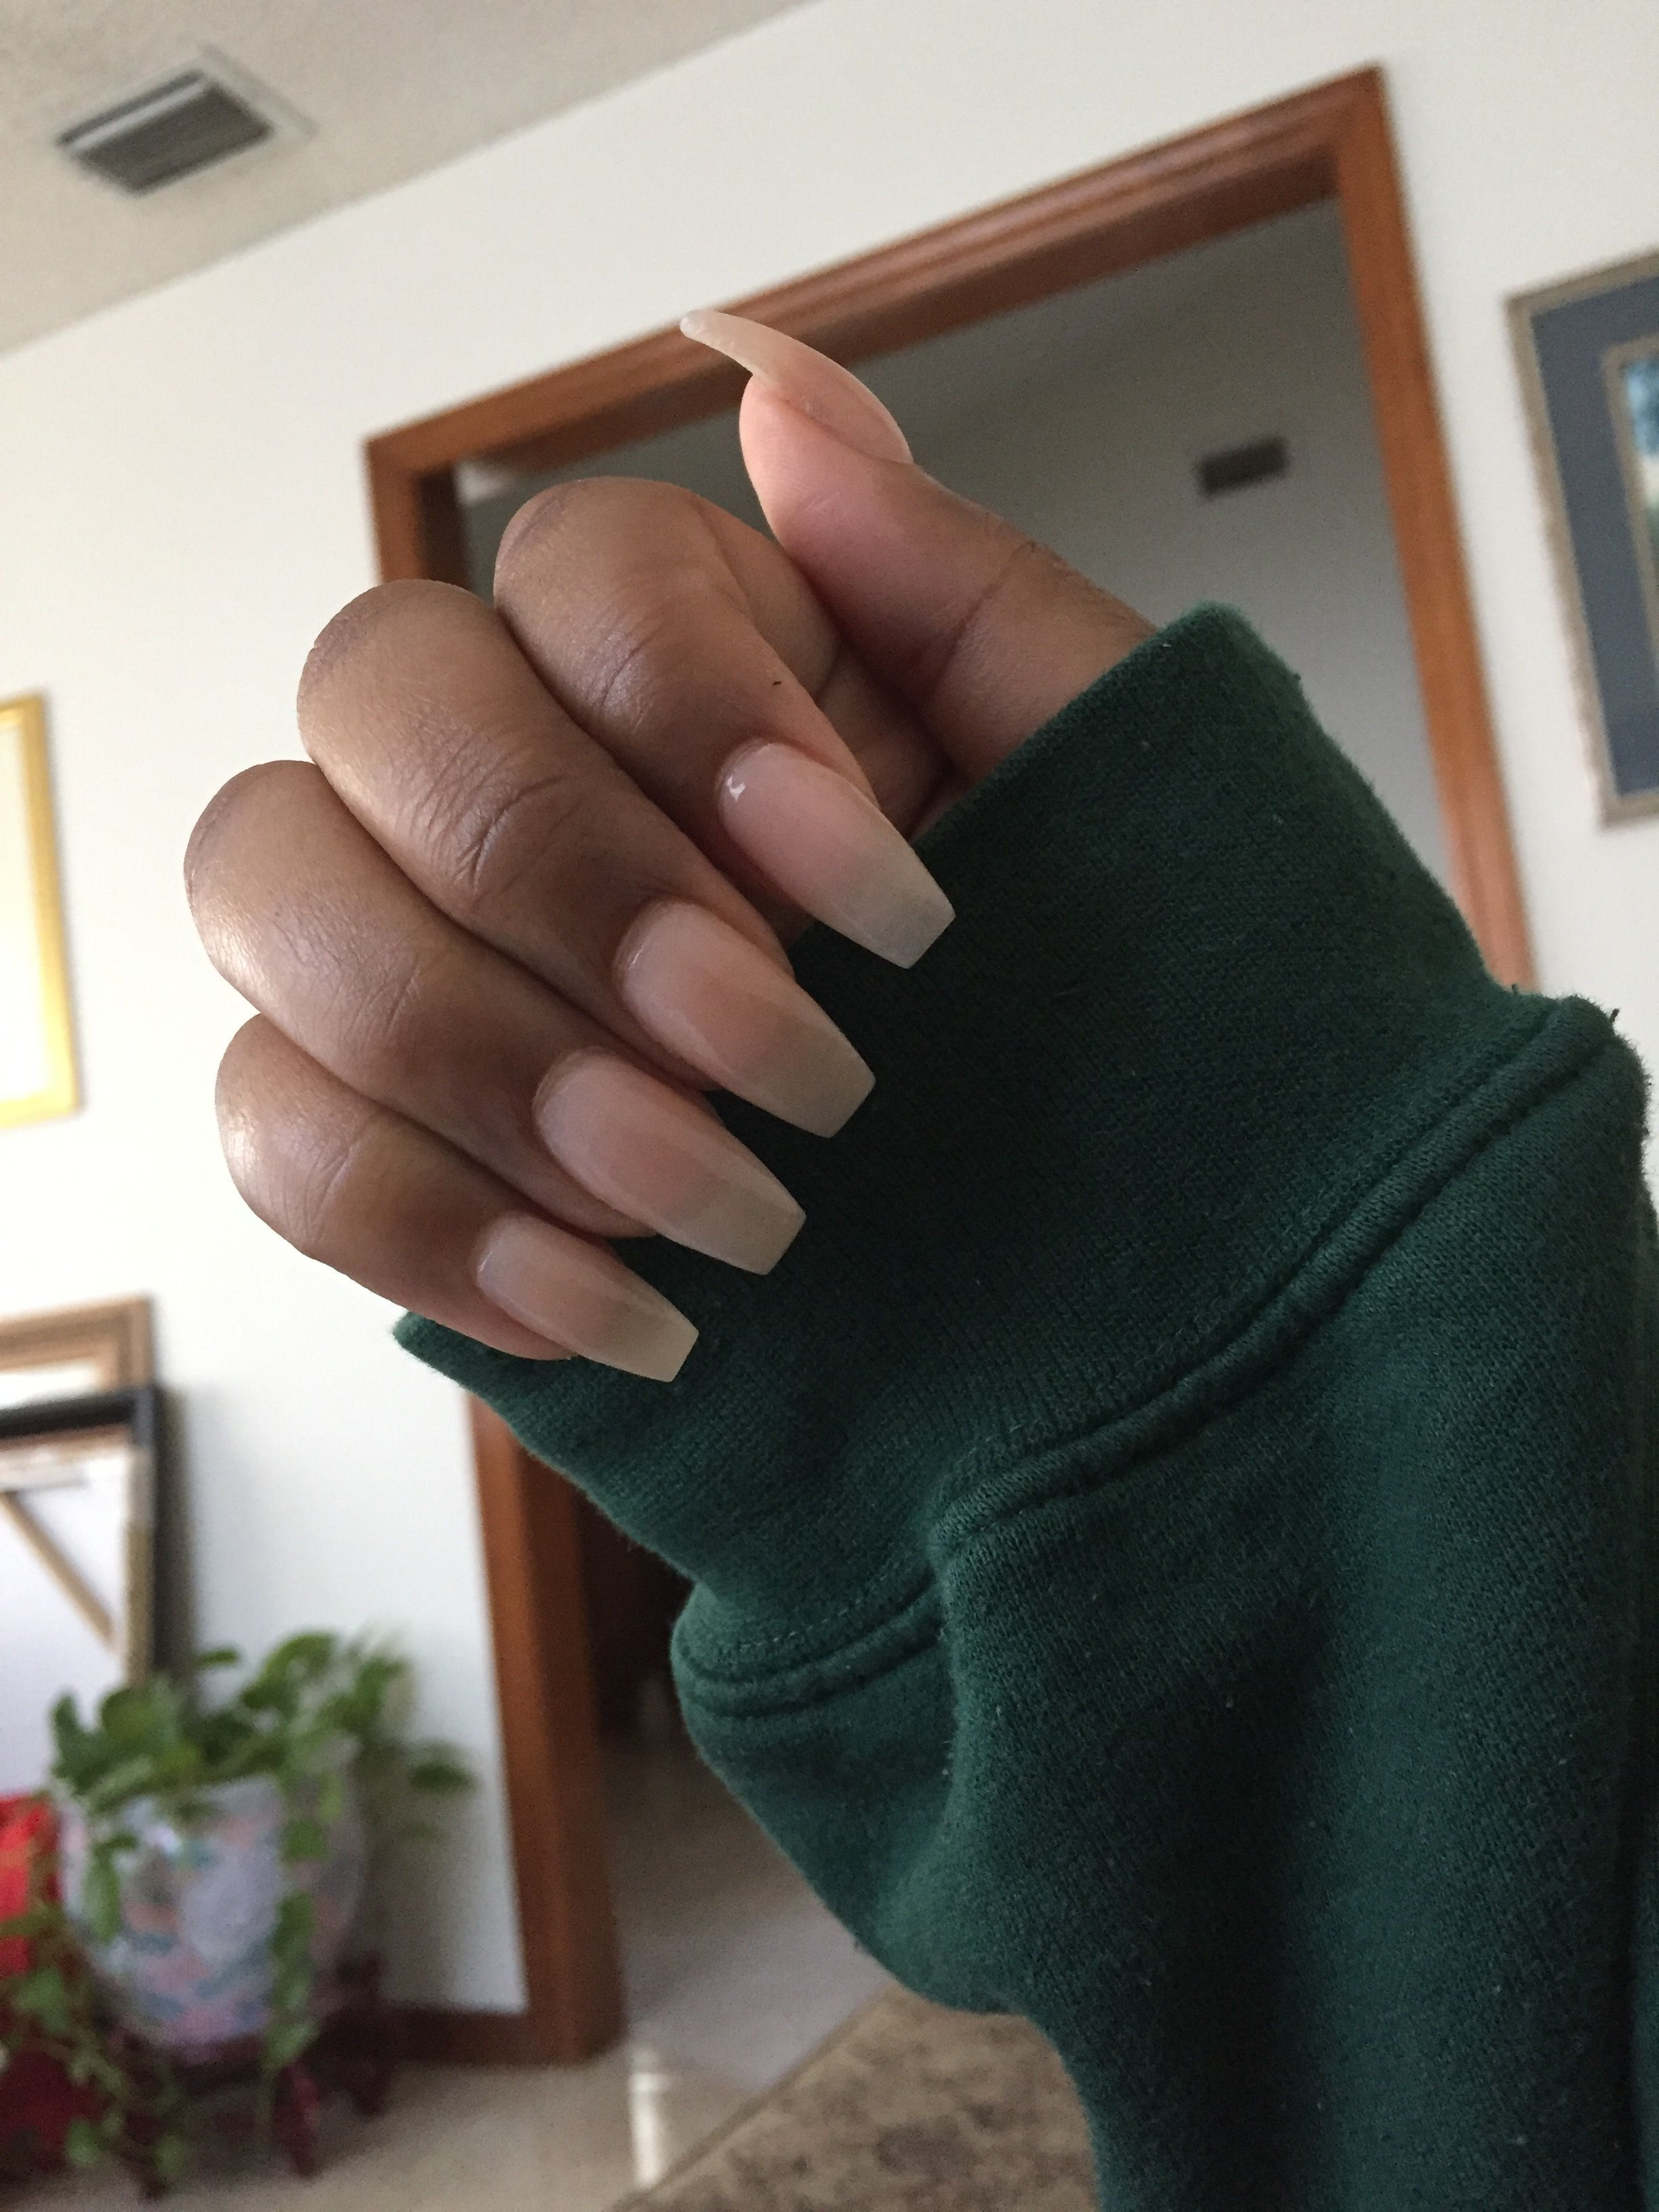 Pin By Armani Johnson On Colors In 2020 Clear Acrylic Nails Acrylic Nails Acrylic Nails Coffin Short